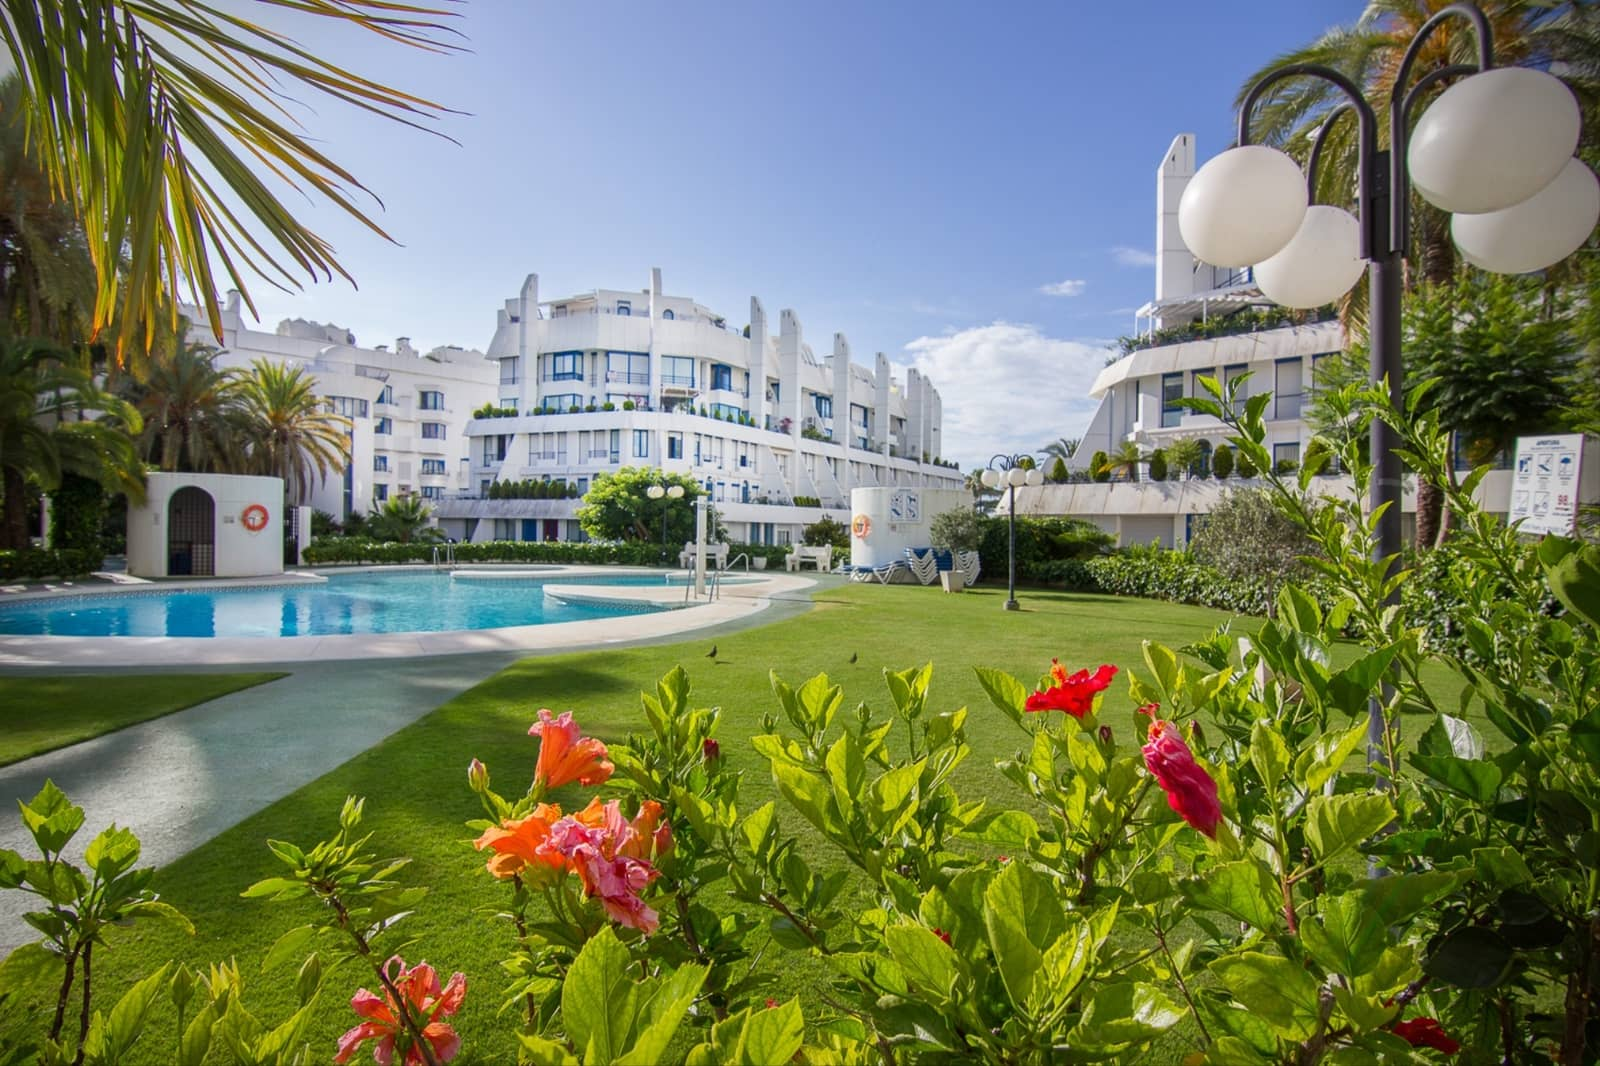 3 bedroom Apartment for sale in Marbella with pool garage - € 495,000 (Ref: 3249660)